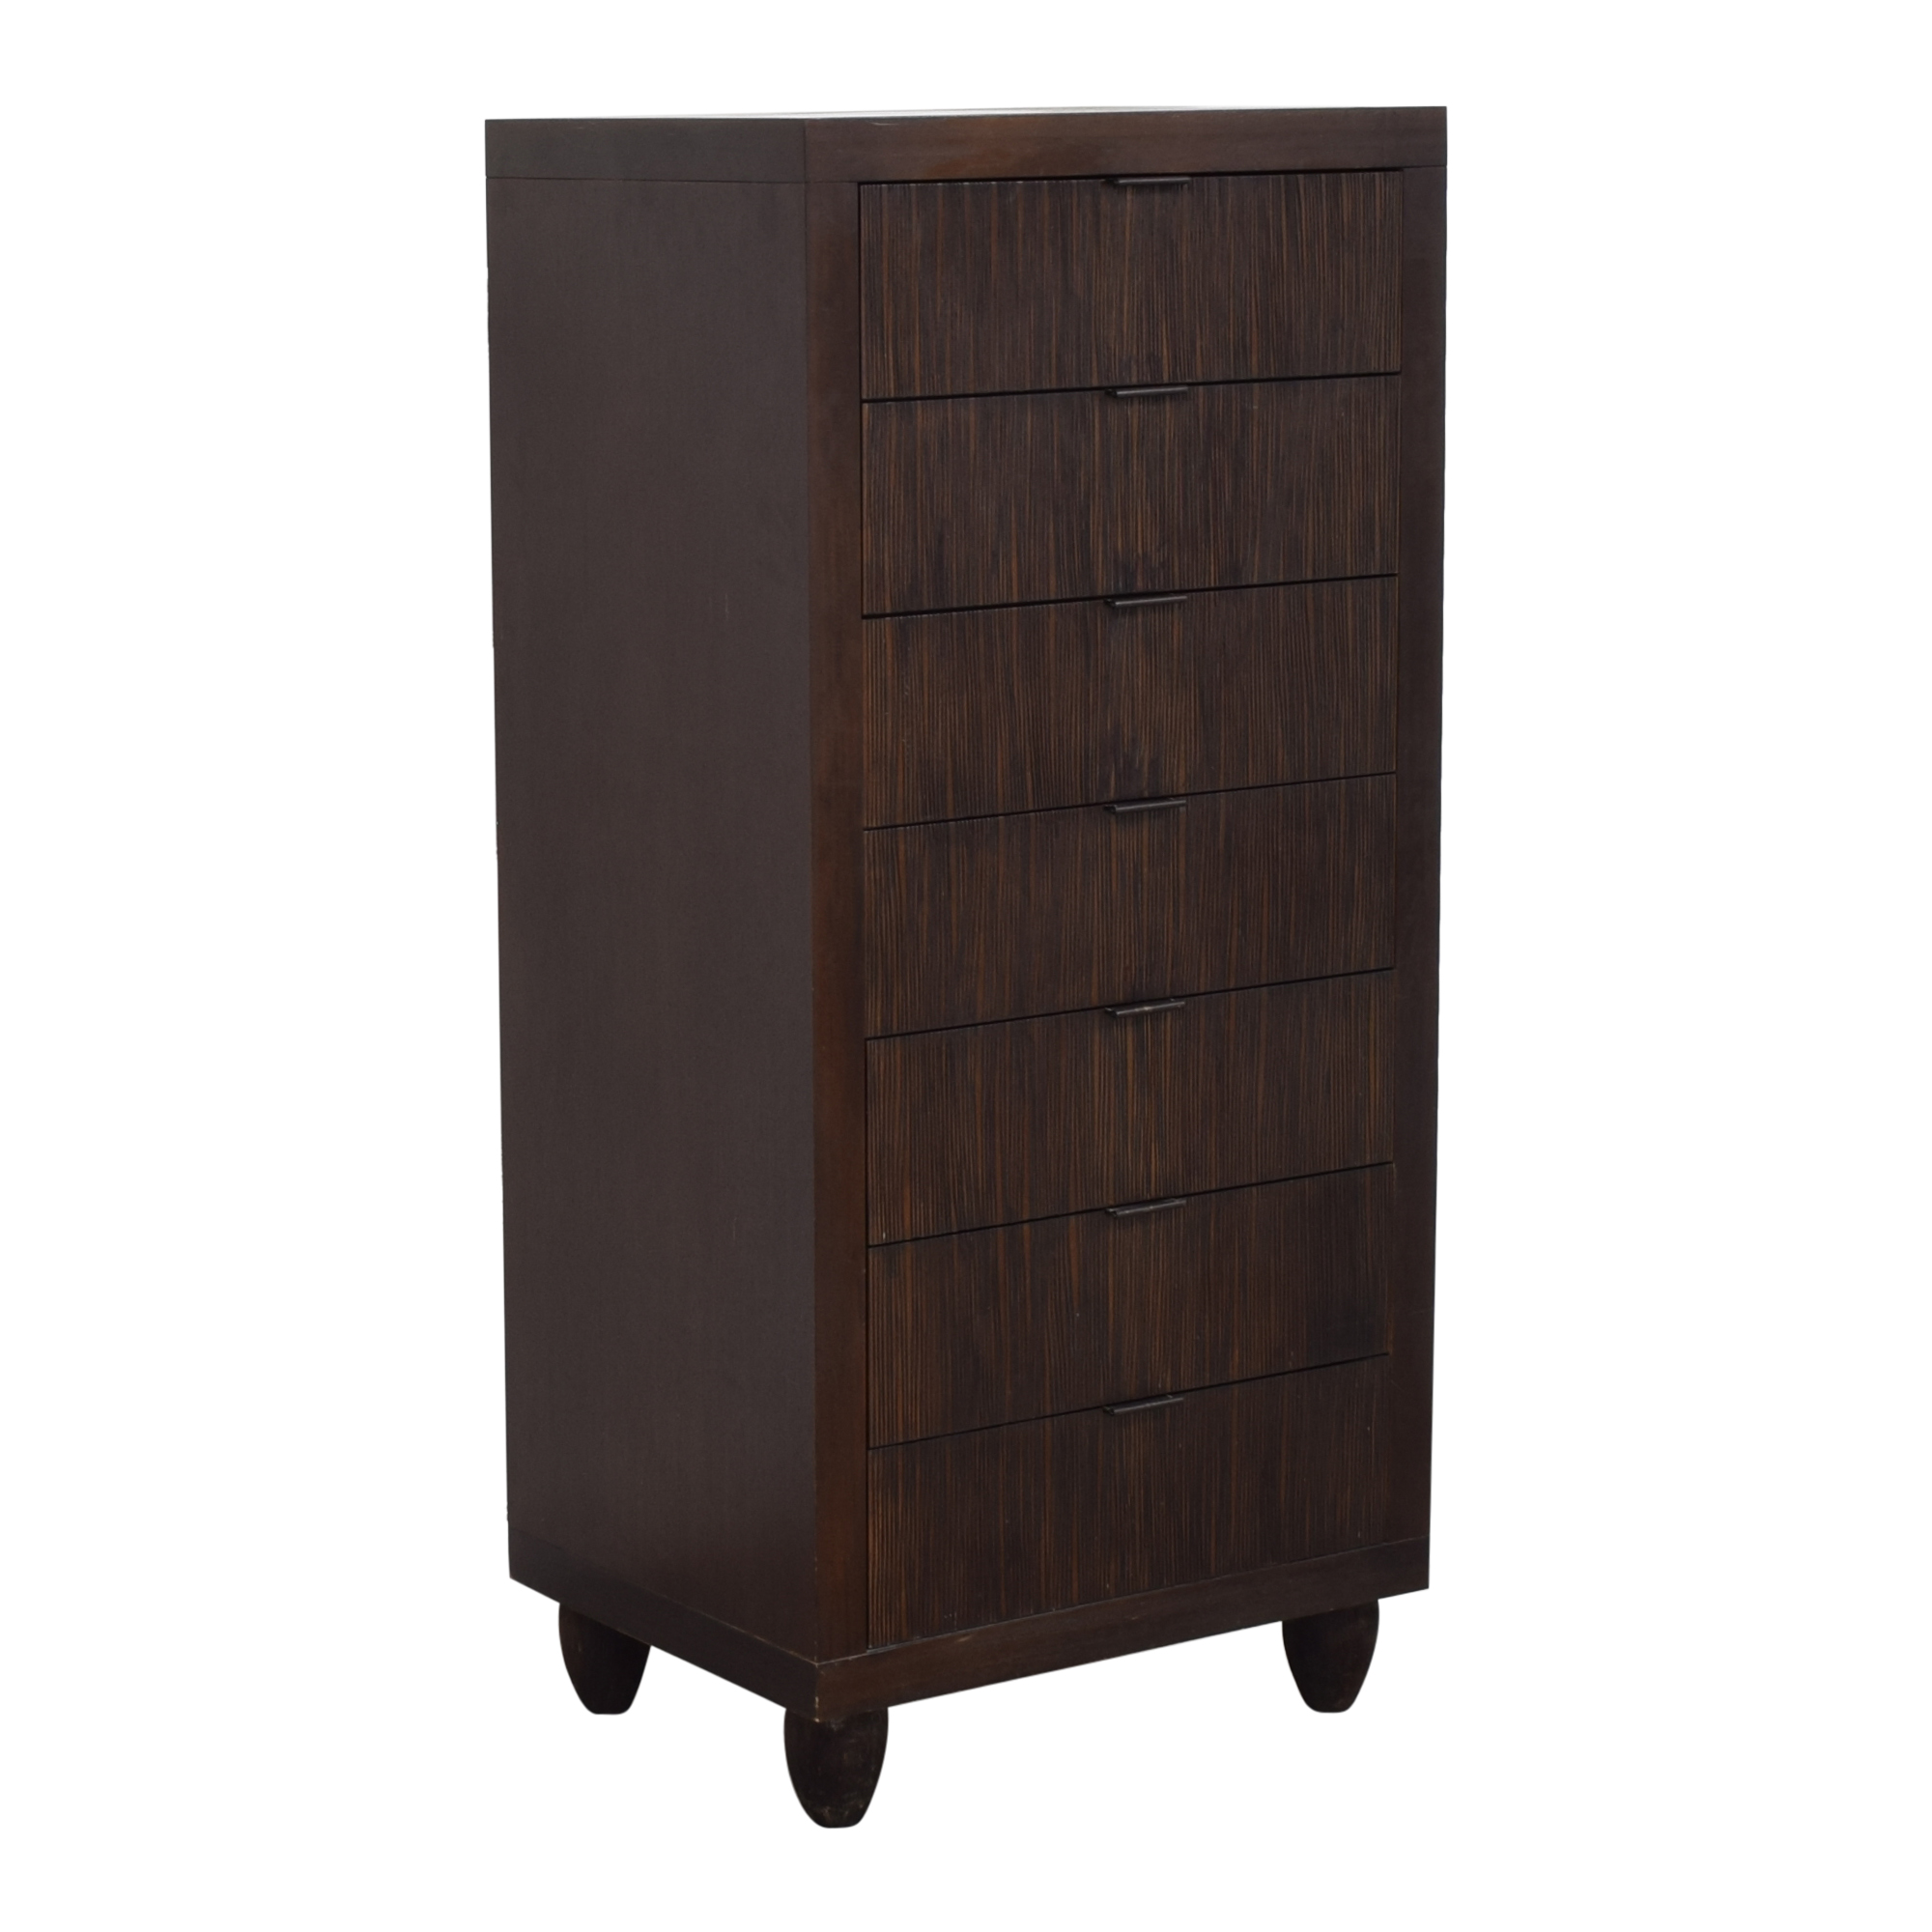 shop Crate & Barrel Tall Chest of Drawers Crate & Barrel Storage